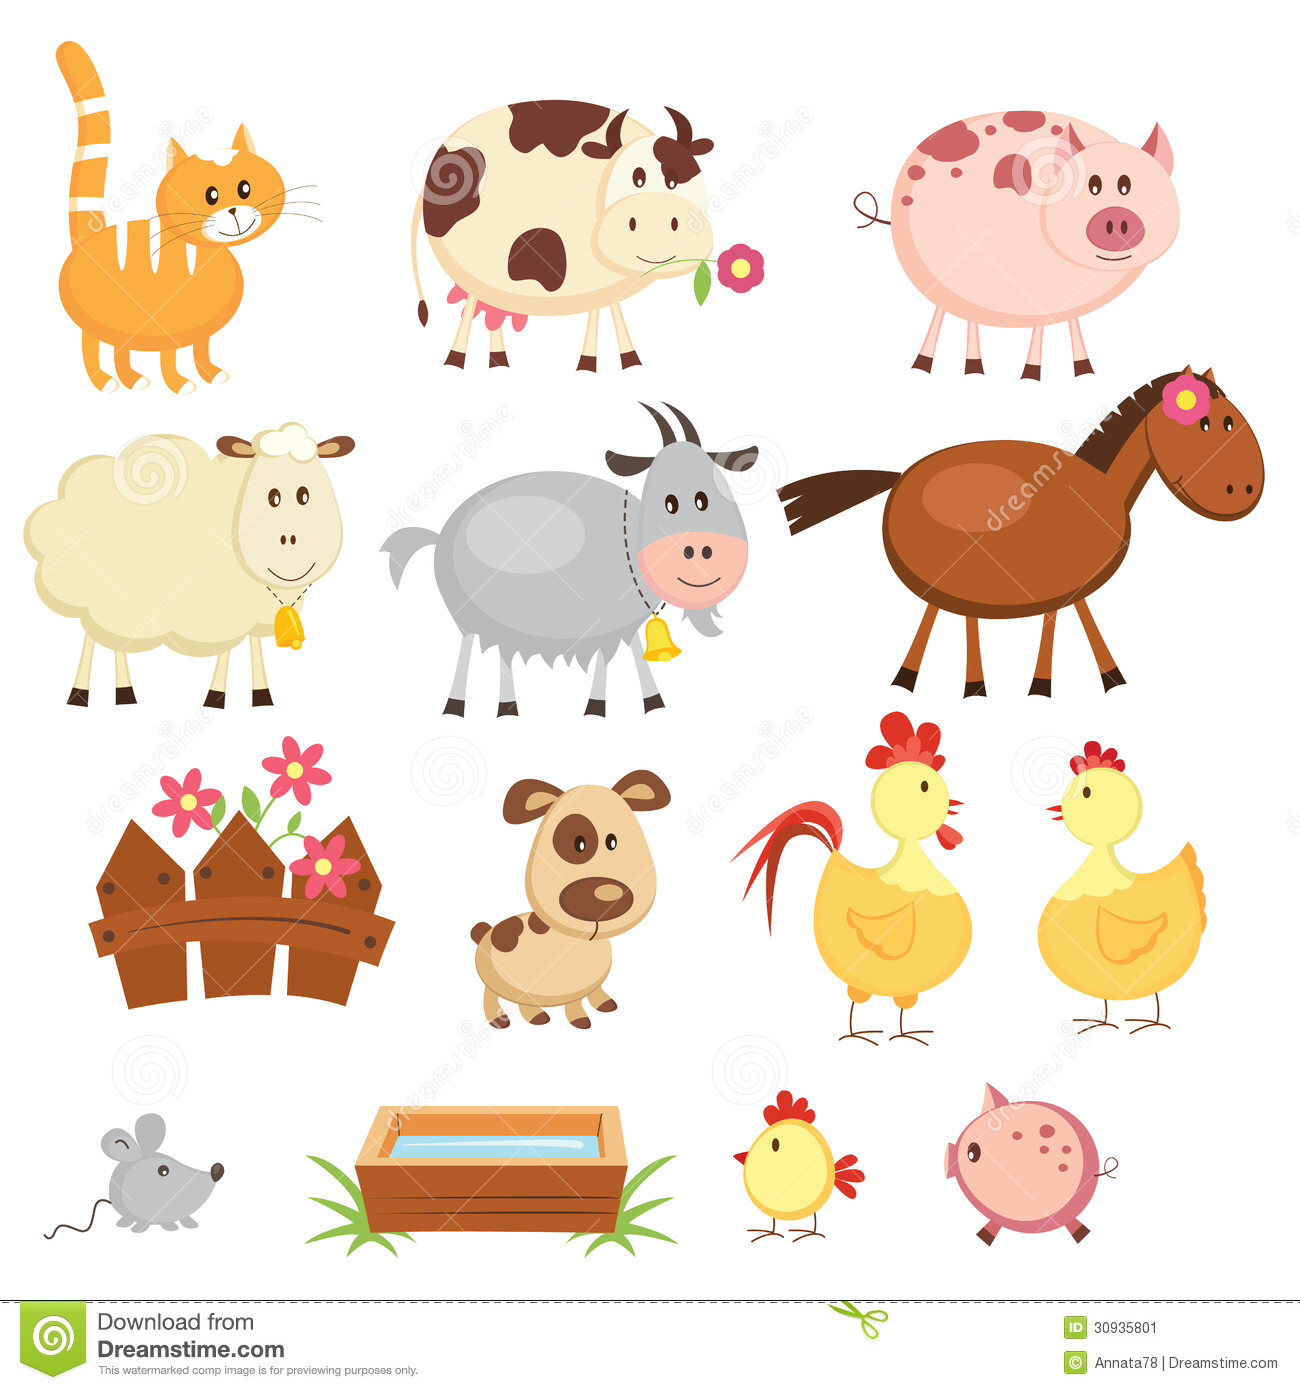 Animals playing clipart pinterest clipart free 84+ Farm Animal Clipart | ClipartLook clipart free